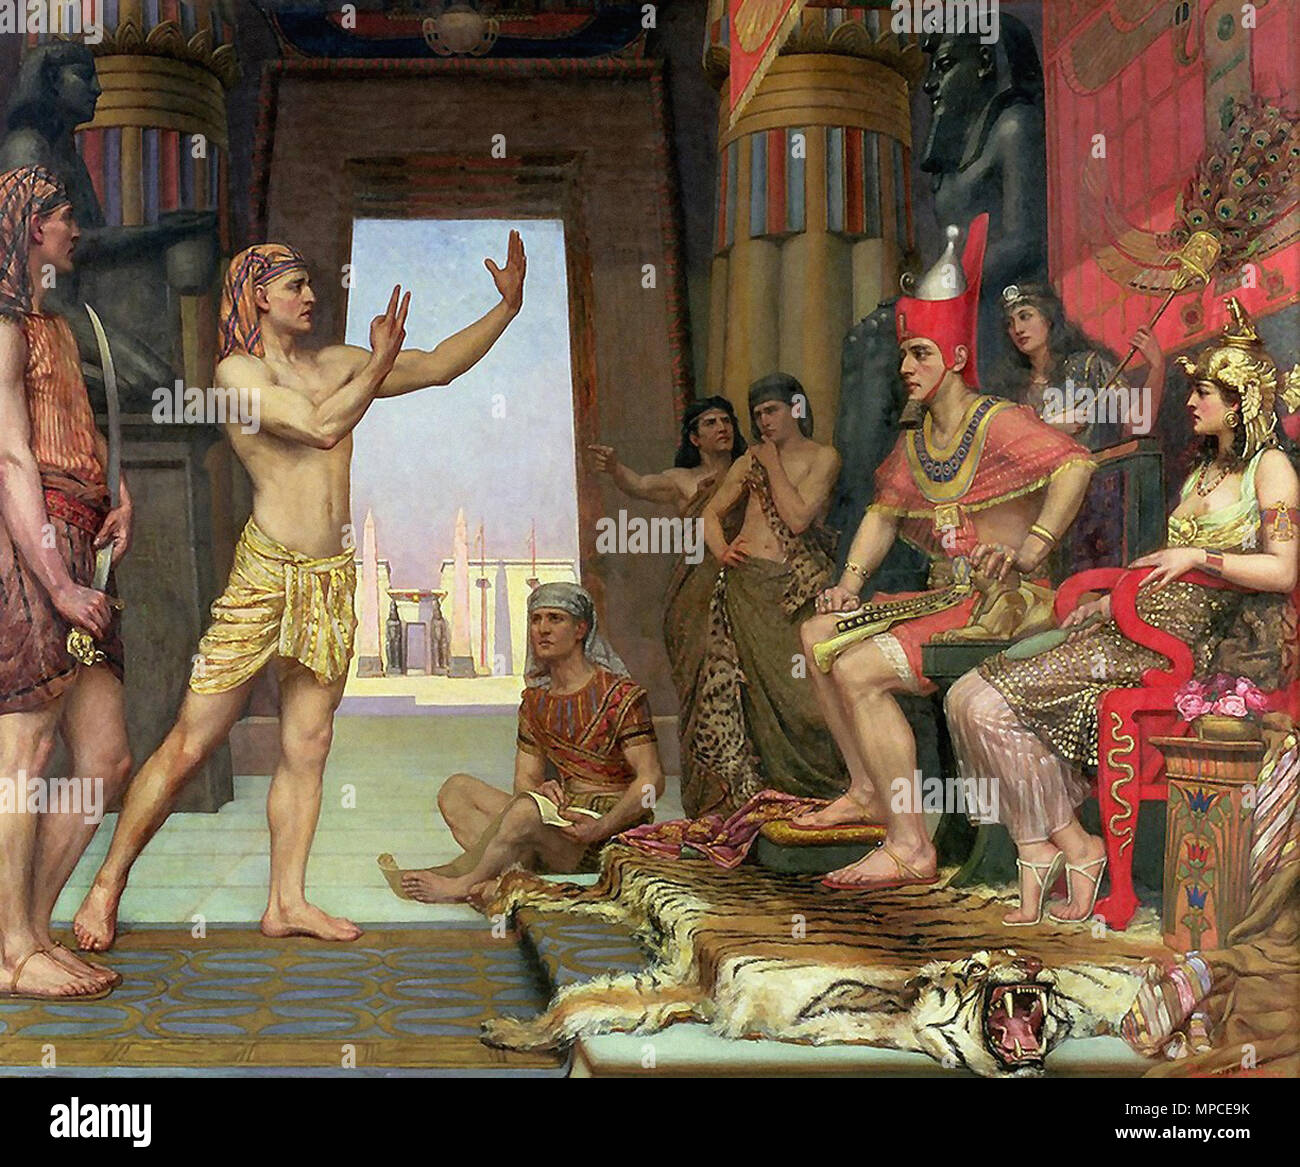 Arthur Reginald - Joseph Interprets Pharaoh's Dream 1 - Stock Image